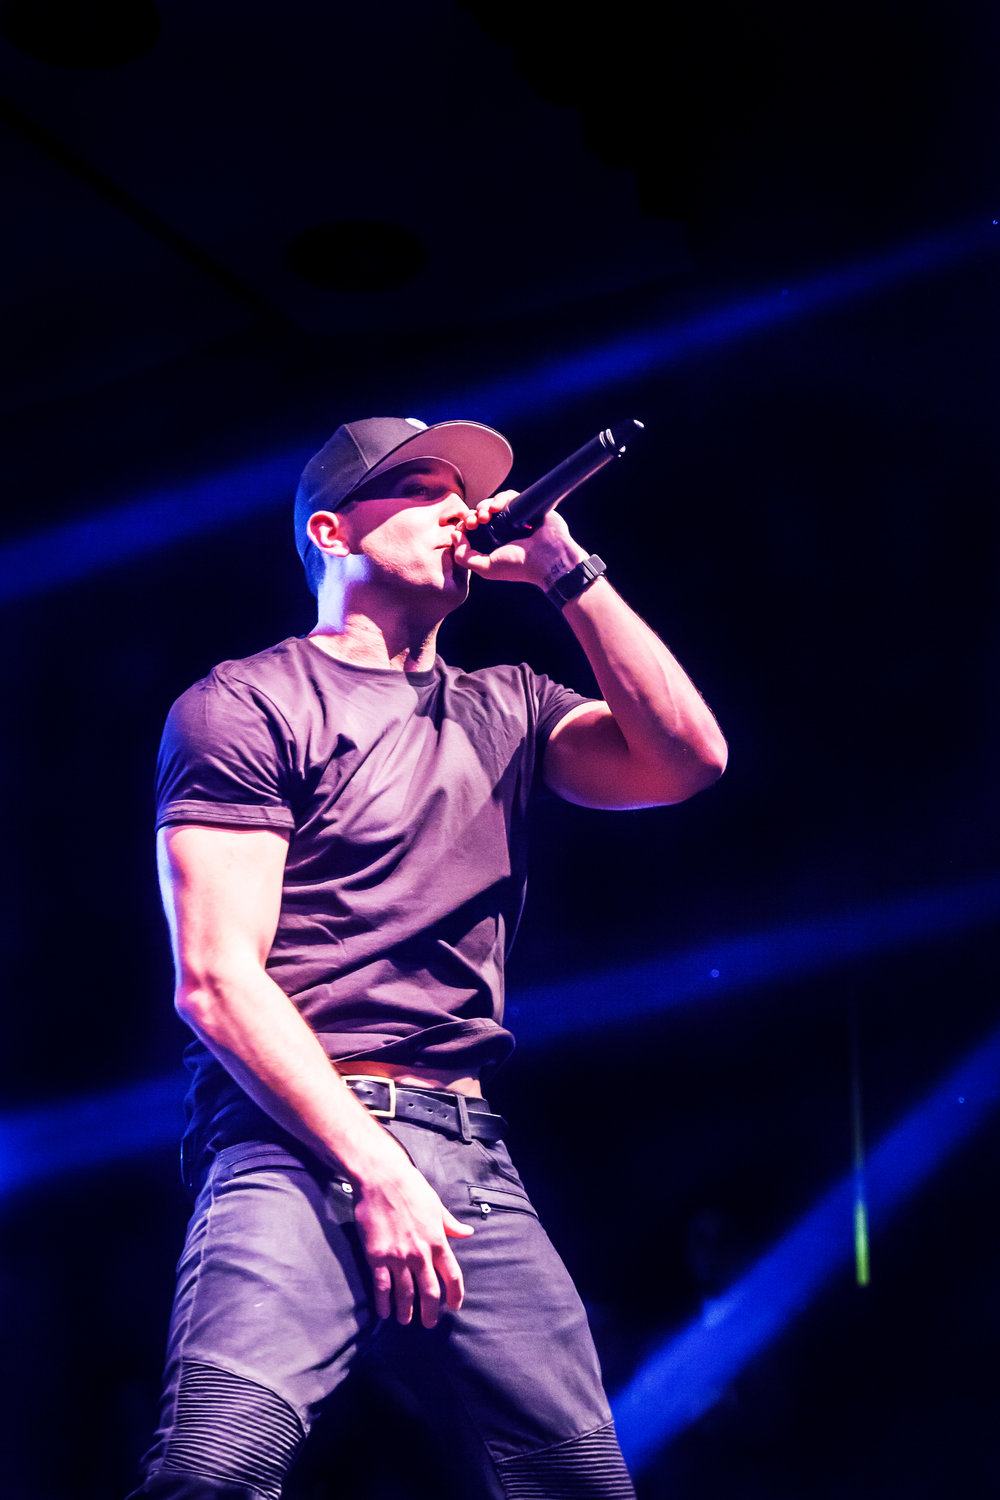 Musician Mike Stud performing at a concert at University of Iowa, Nov. 2014.